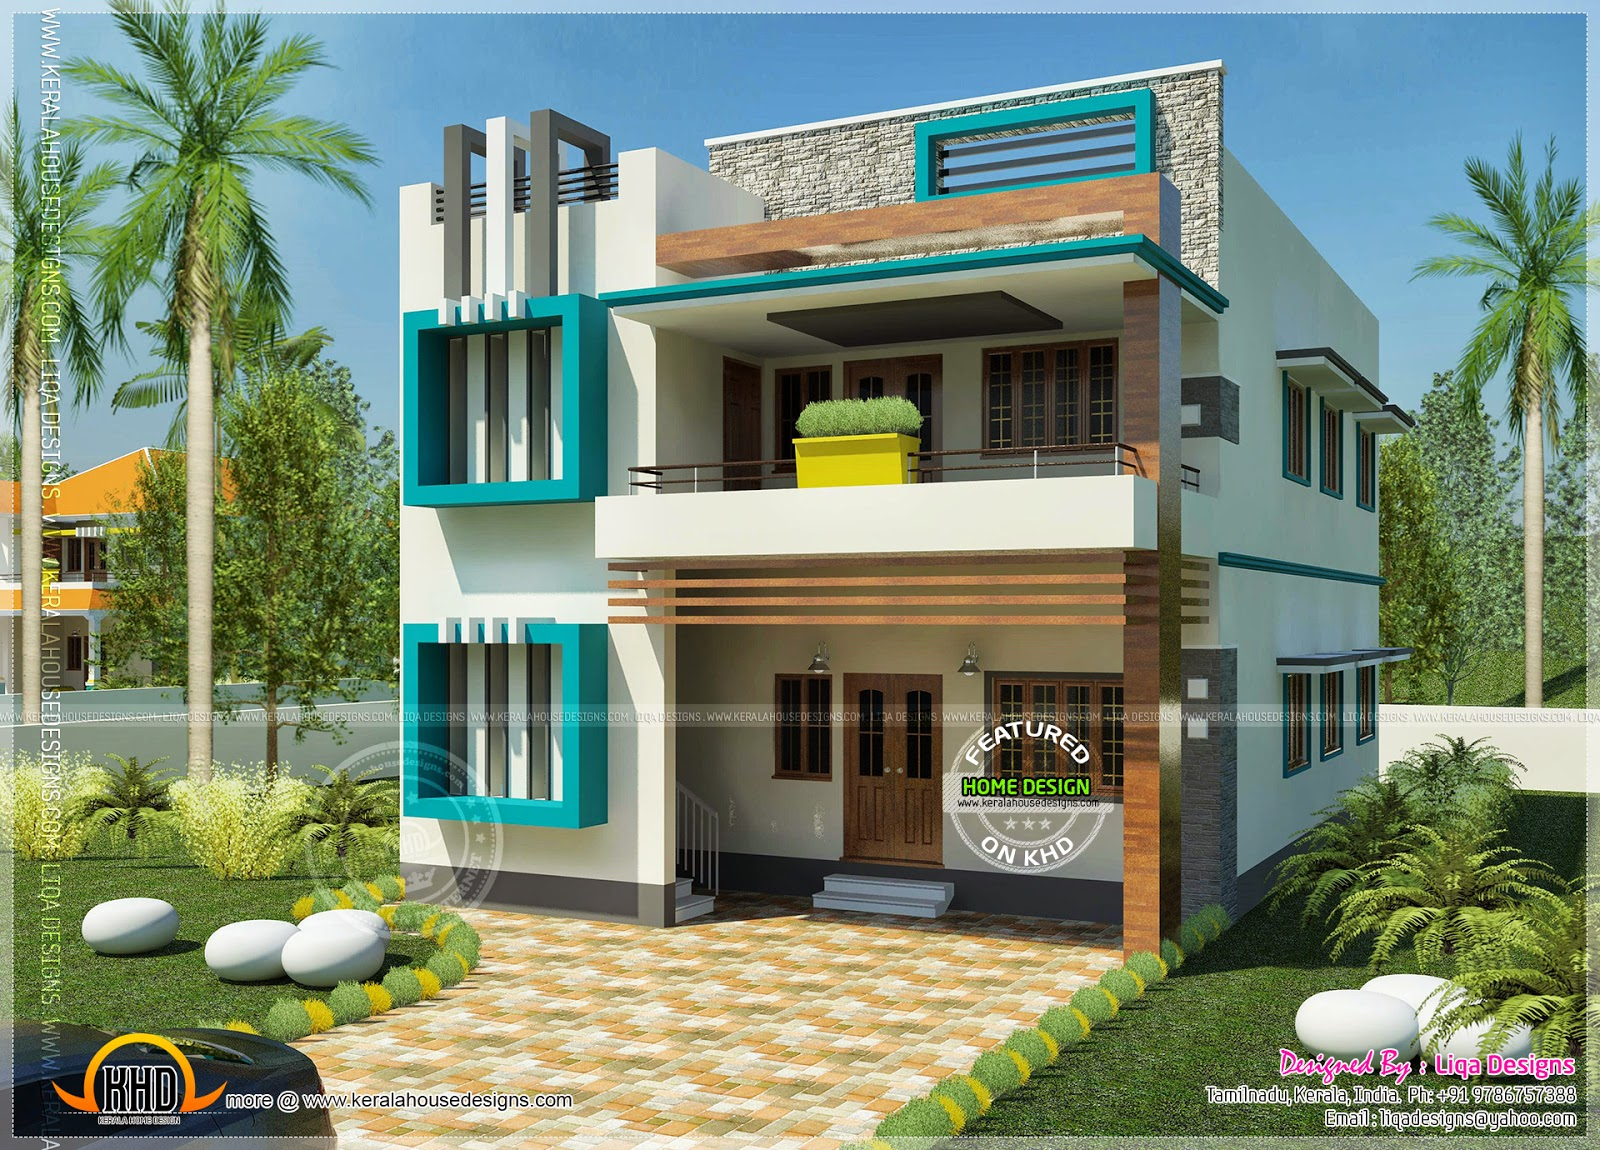 South indian contemporary home kerala home design and for 2 bhk house designs in india